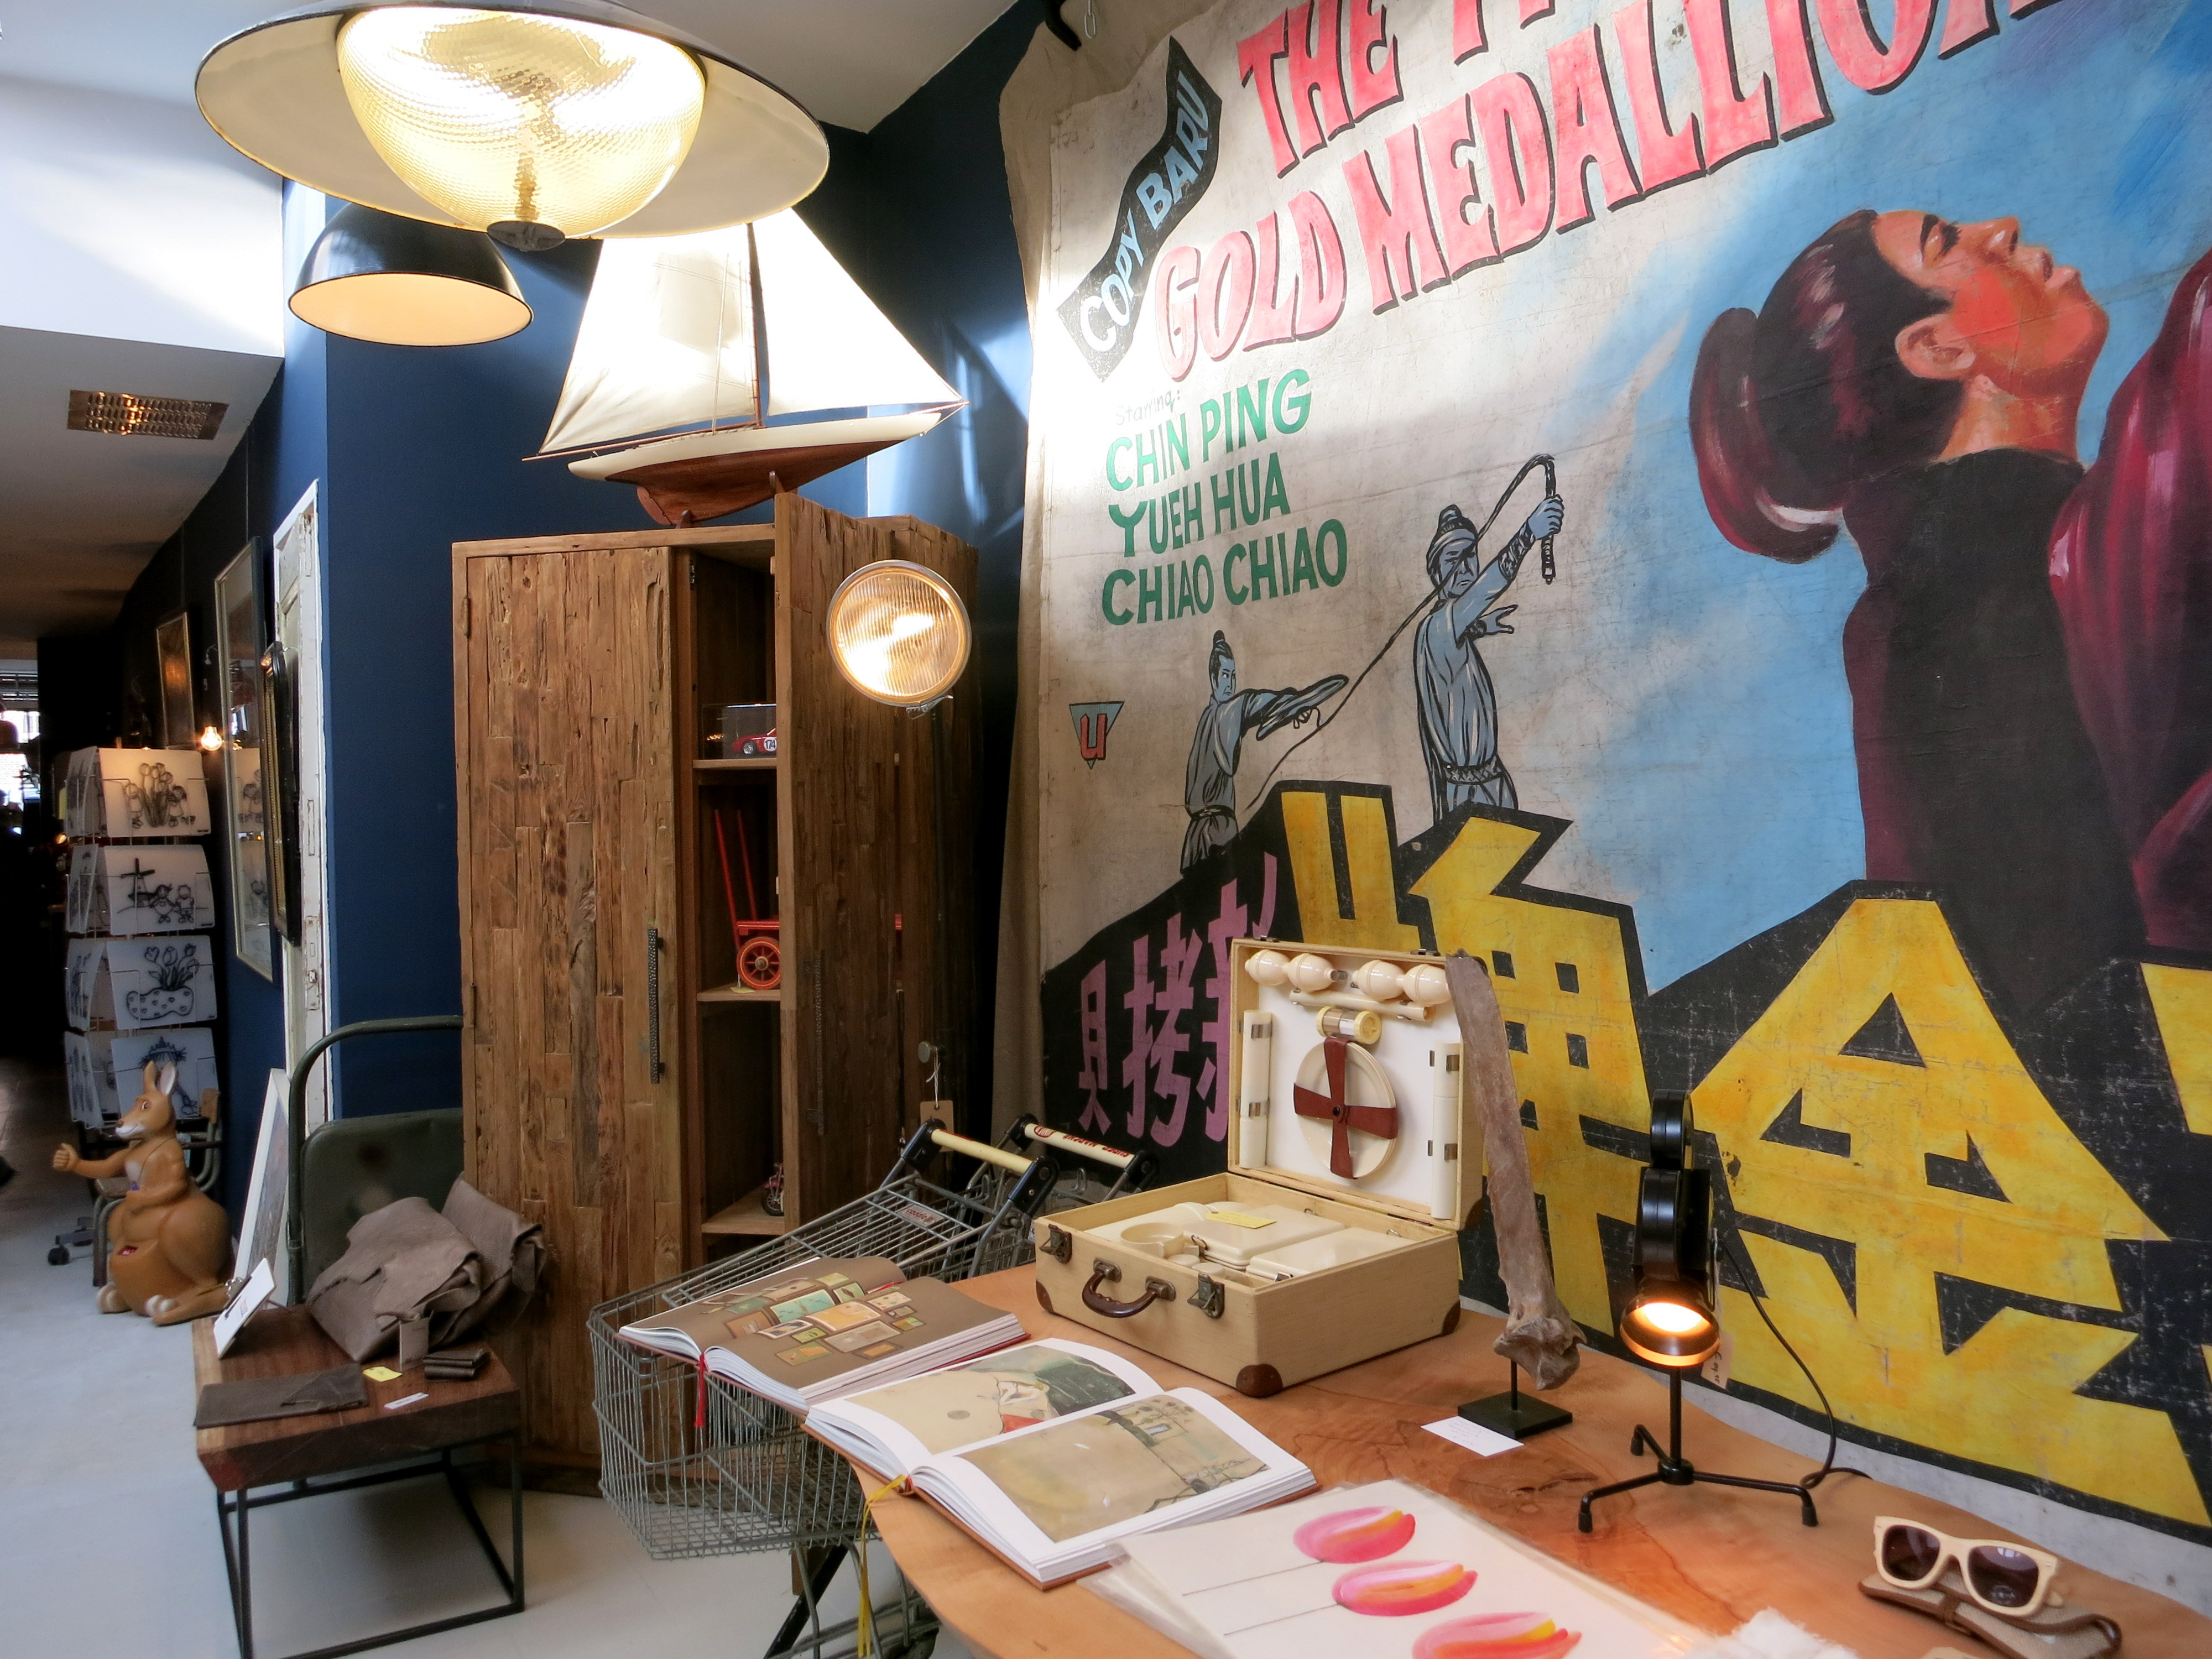 A new shop and gallery is open on Elandsgracht. Come by and check out the cool clothing and funky artifacts for your home at E Street 37.